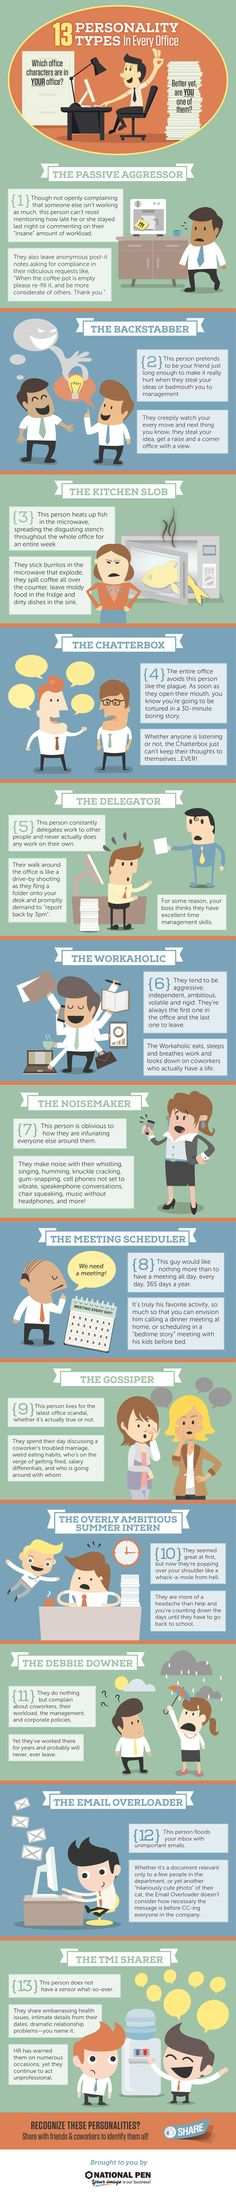 13 Personalities You'll Find In Every Office [INFOGRAPHIC] on http://theundercoverrecruiter.com